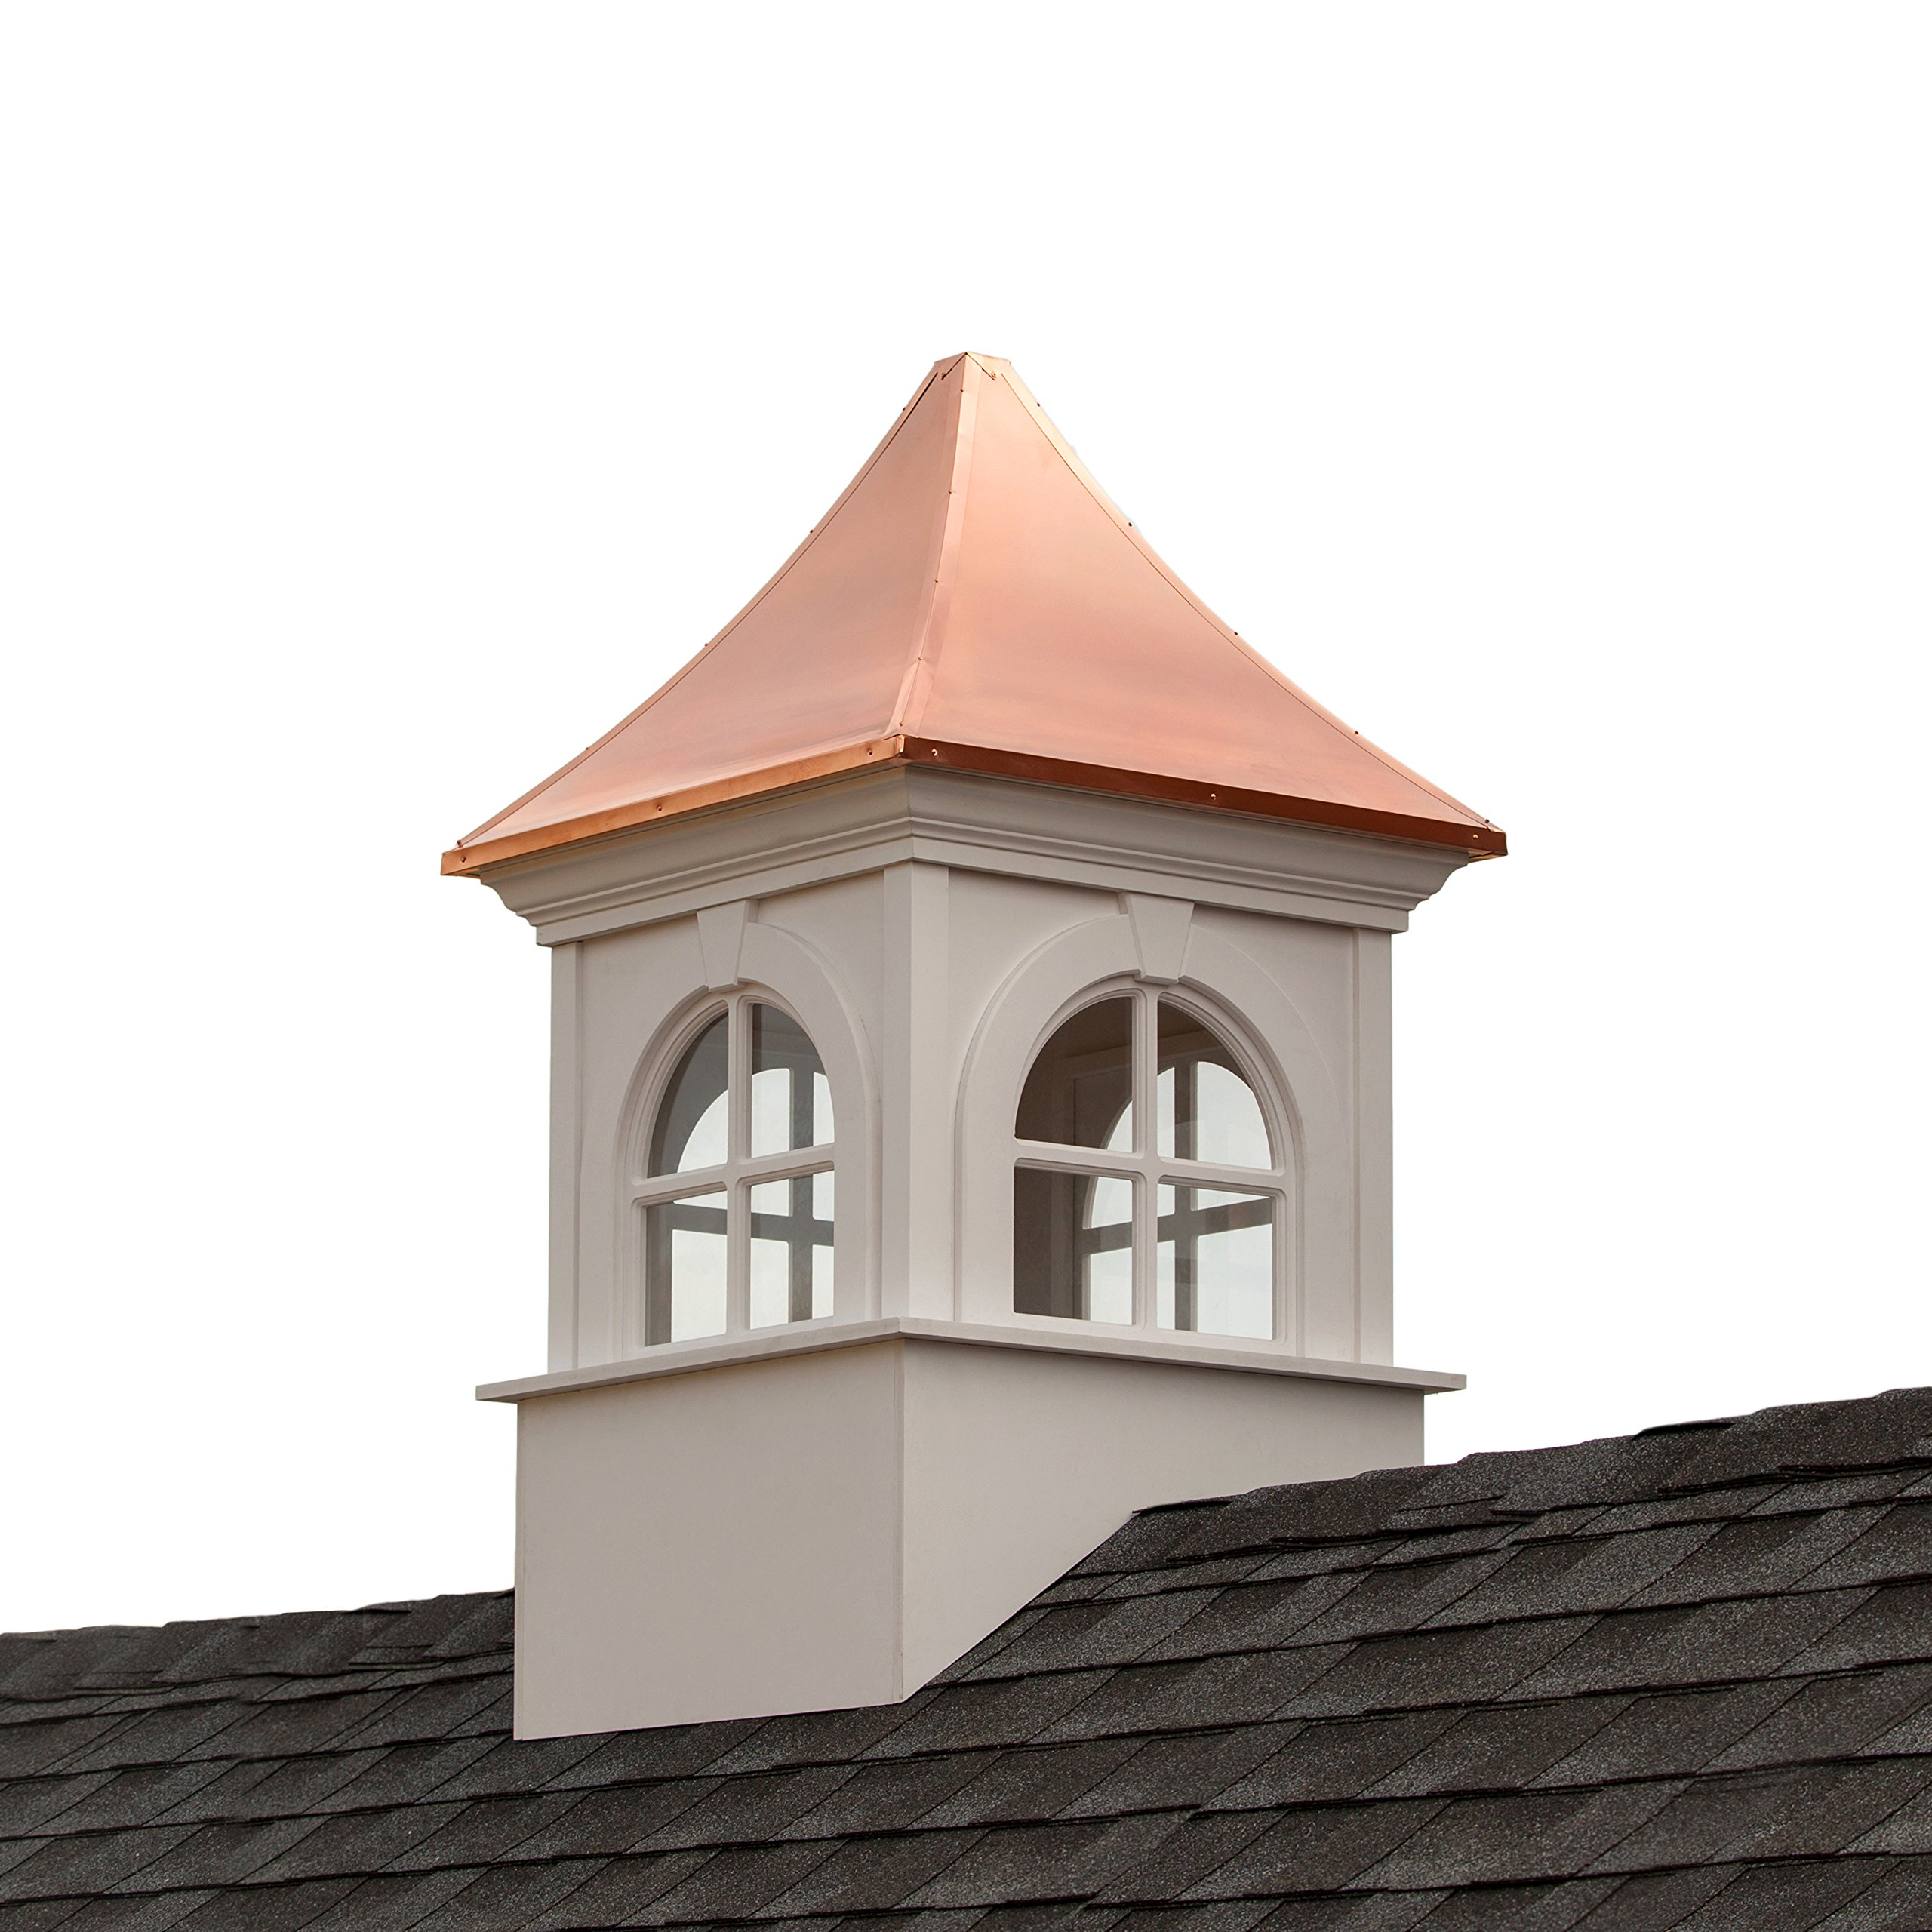 Good Directions Smithsonian Fairfax Vinyl Cupola with Copper Roof 26'' x 43'' by